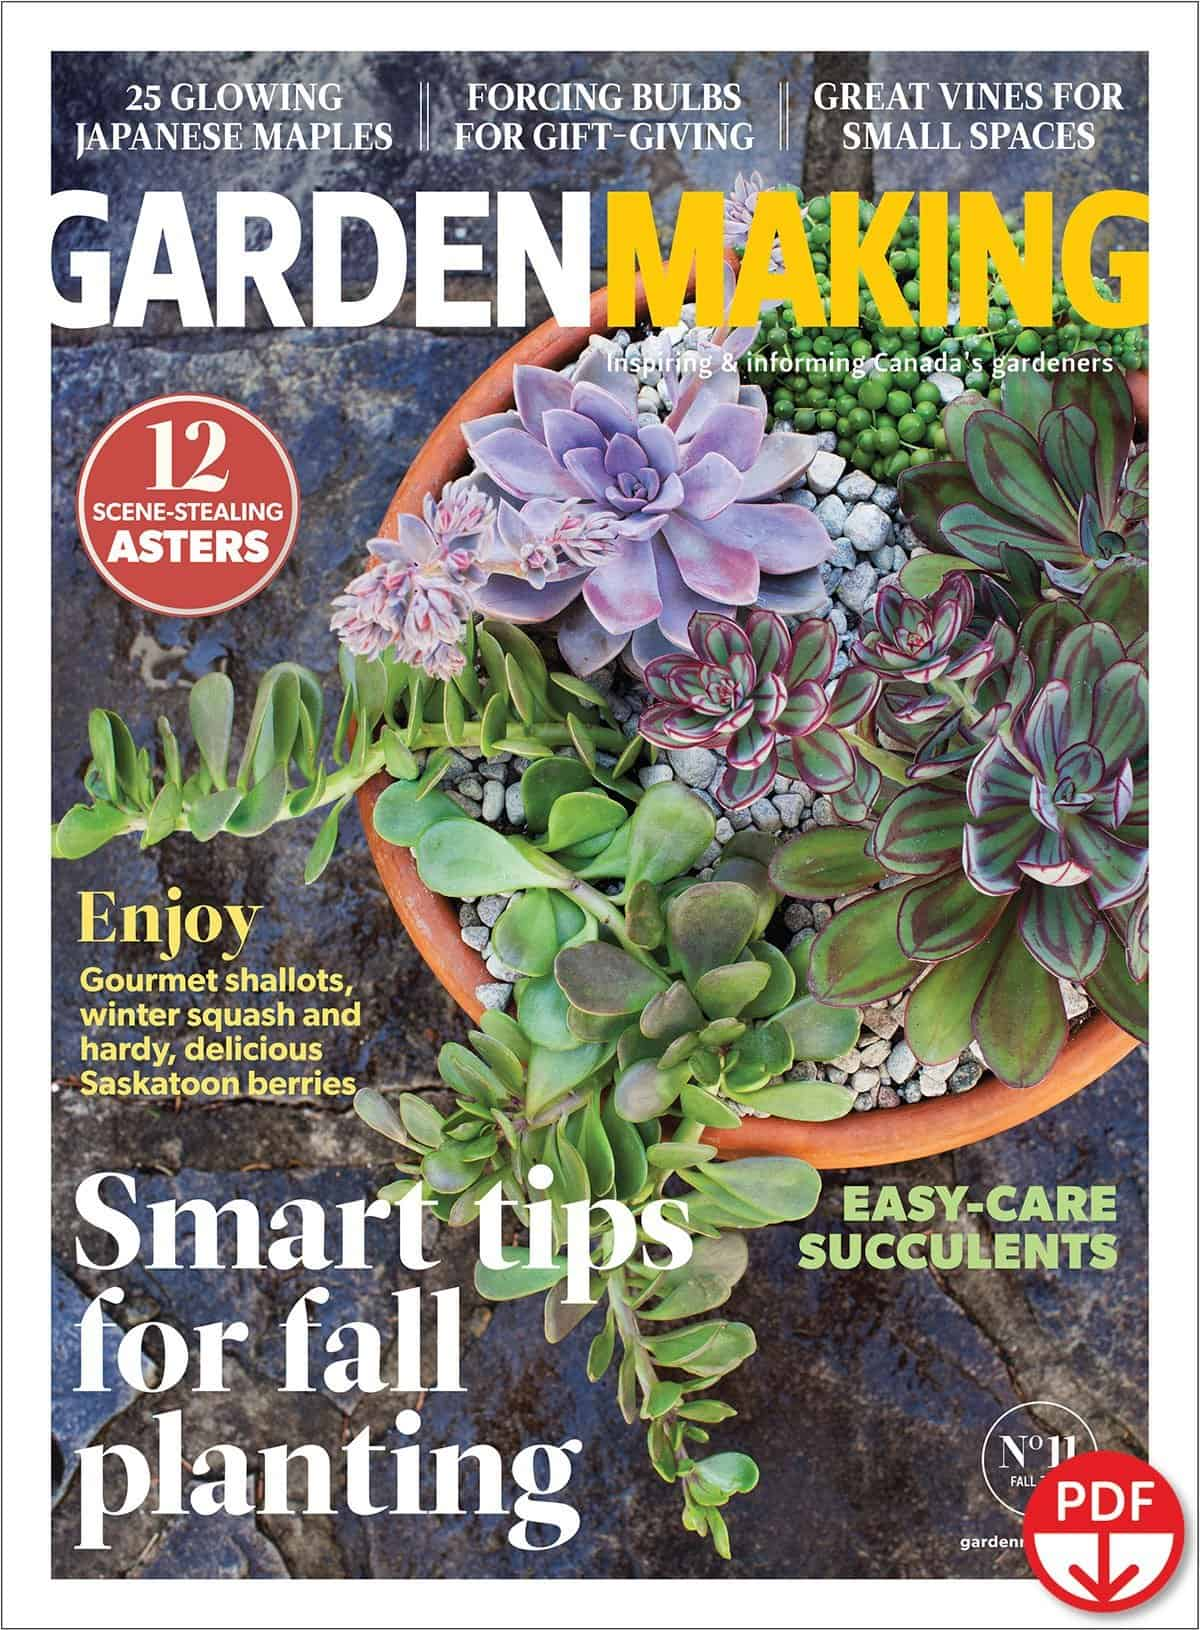 Succulents are fascinating and easy to grow. Garden Making No. 11 features an article on easy-care succulents. There's also smart tips for fall planting and much more in the 70+ pages of useful articles and inspiring photos.